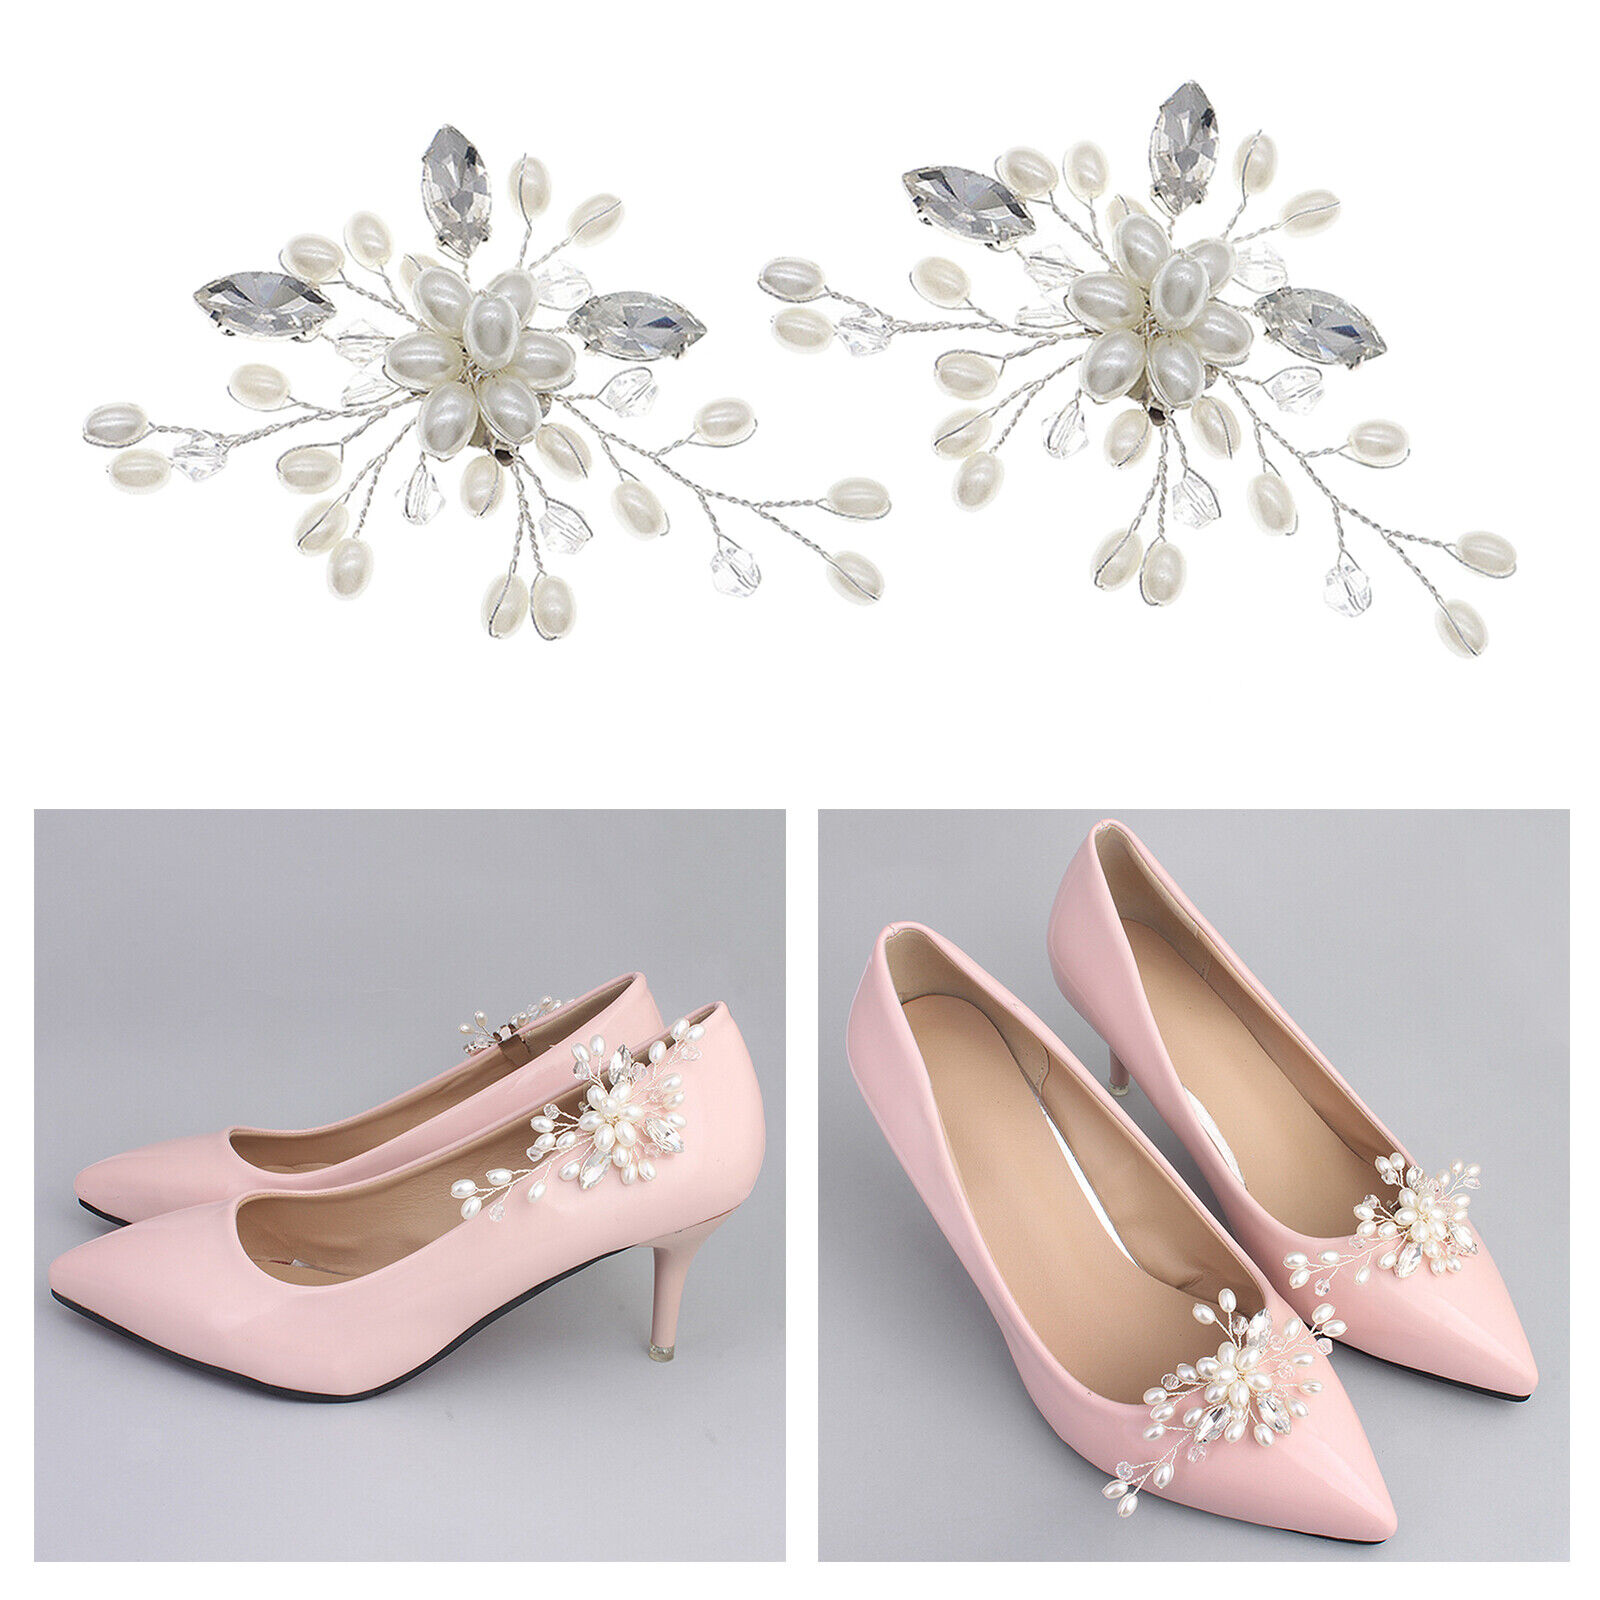 Set of 2 Shoe Clips Female Weddings Party Shoe Charms Buckle Accessories